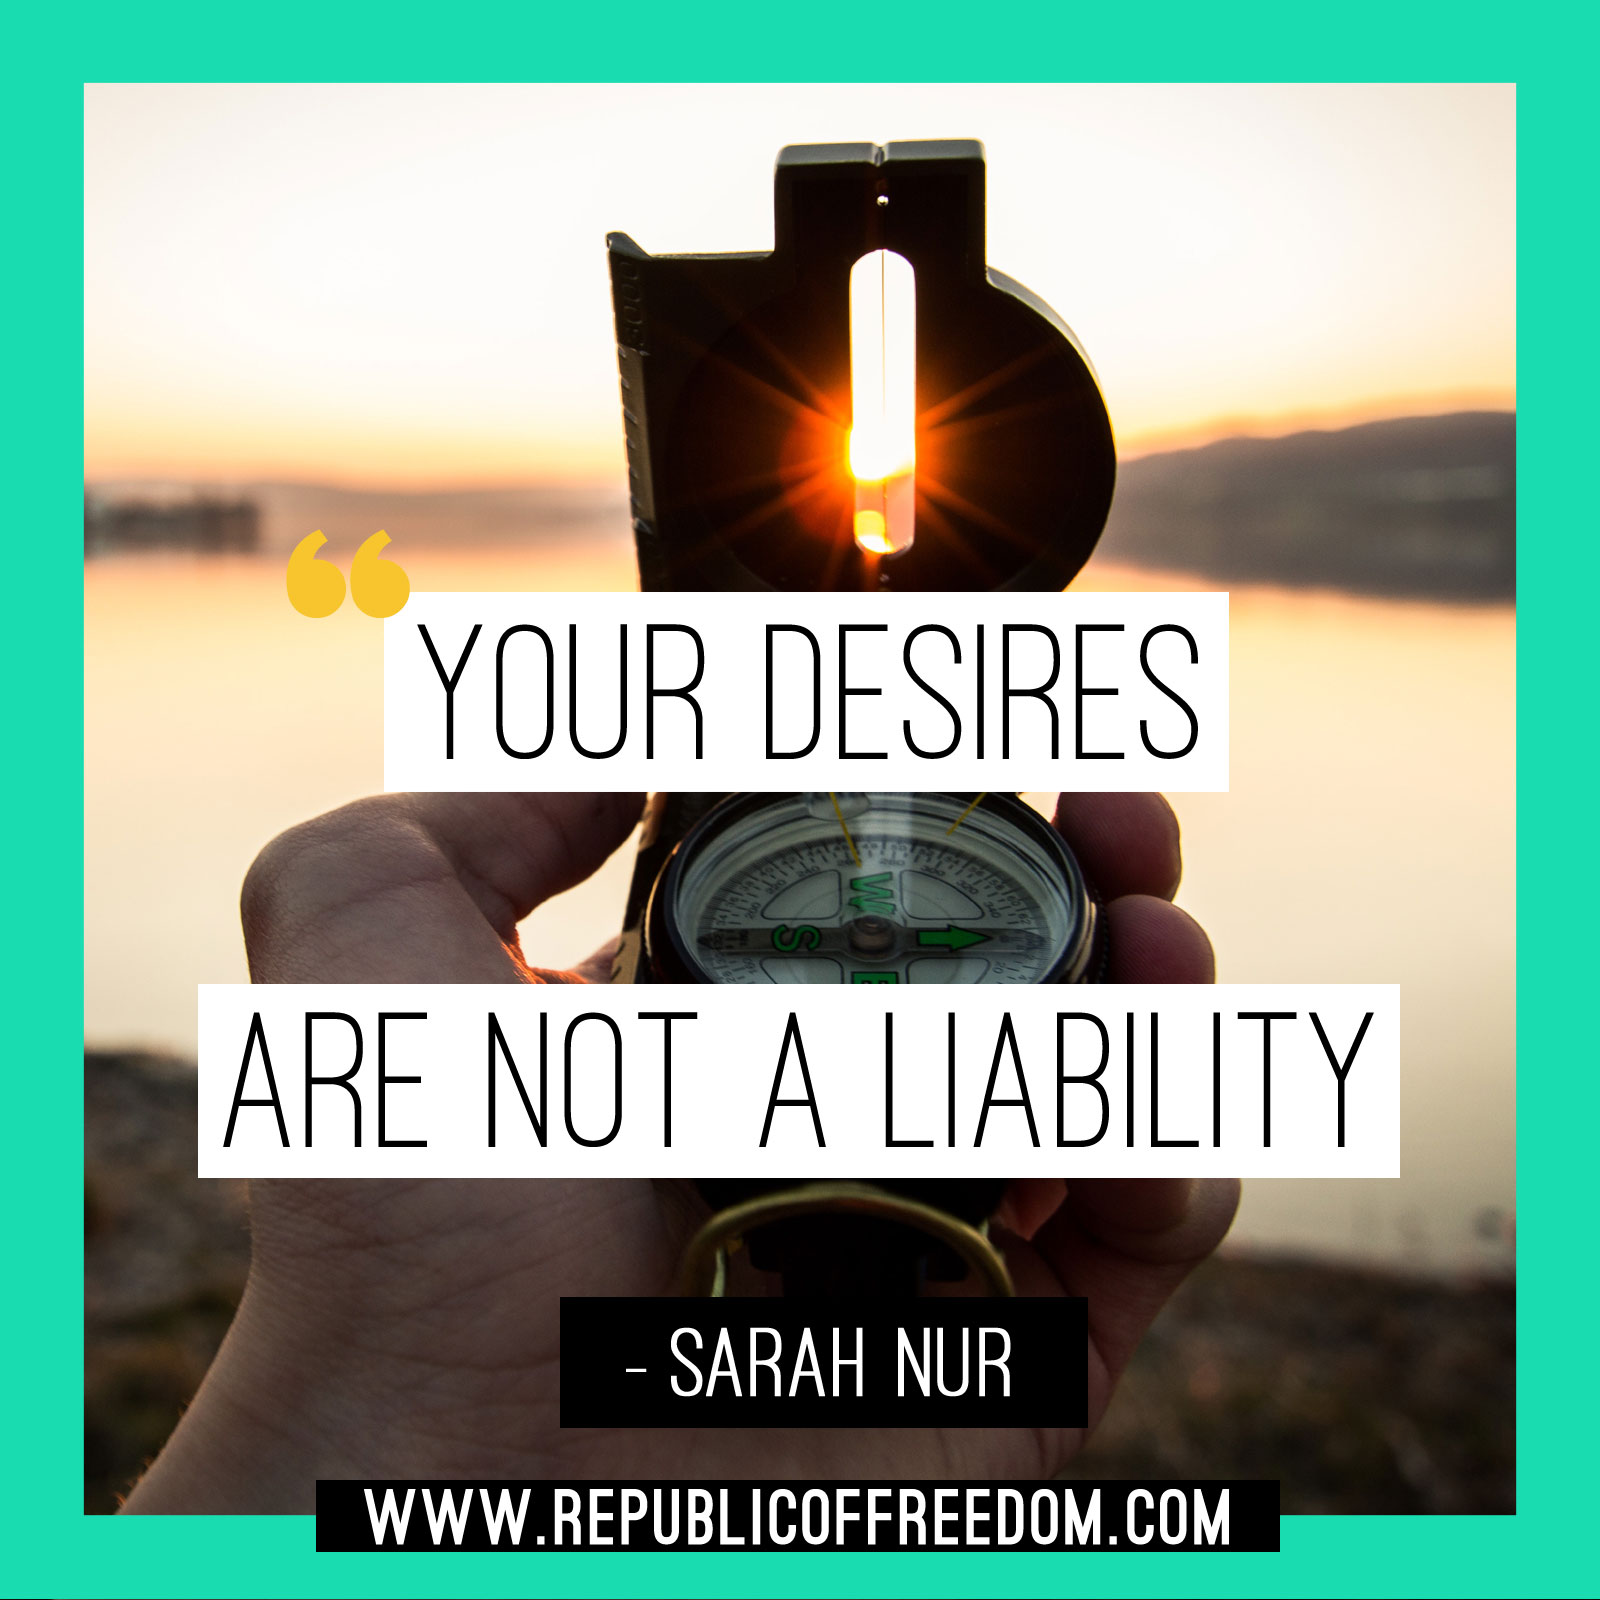 Your desires are not a liability - multipotentialite